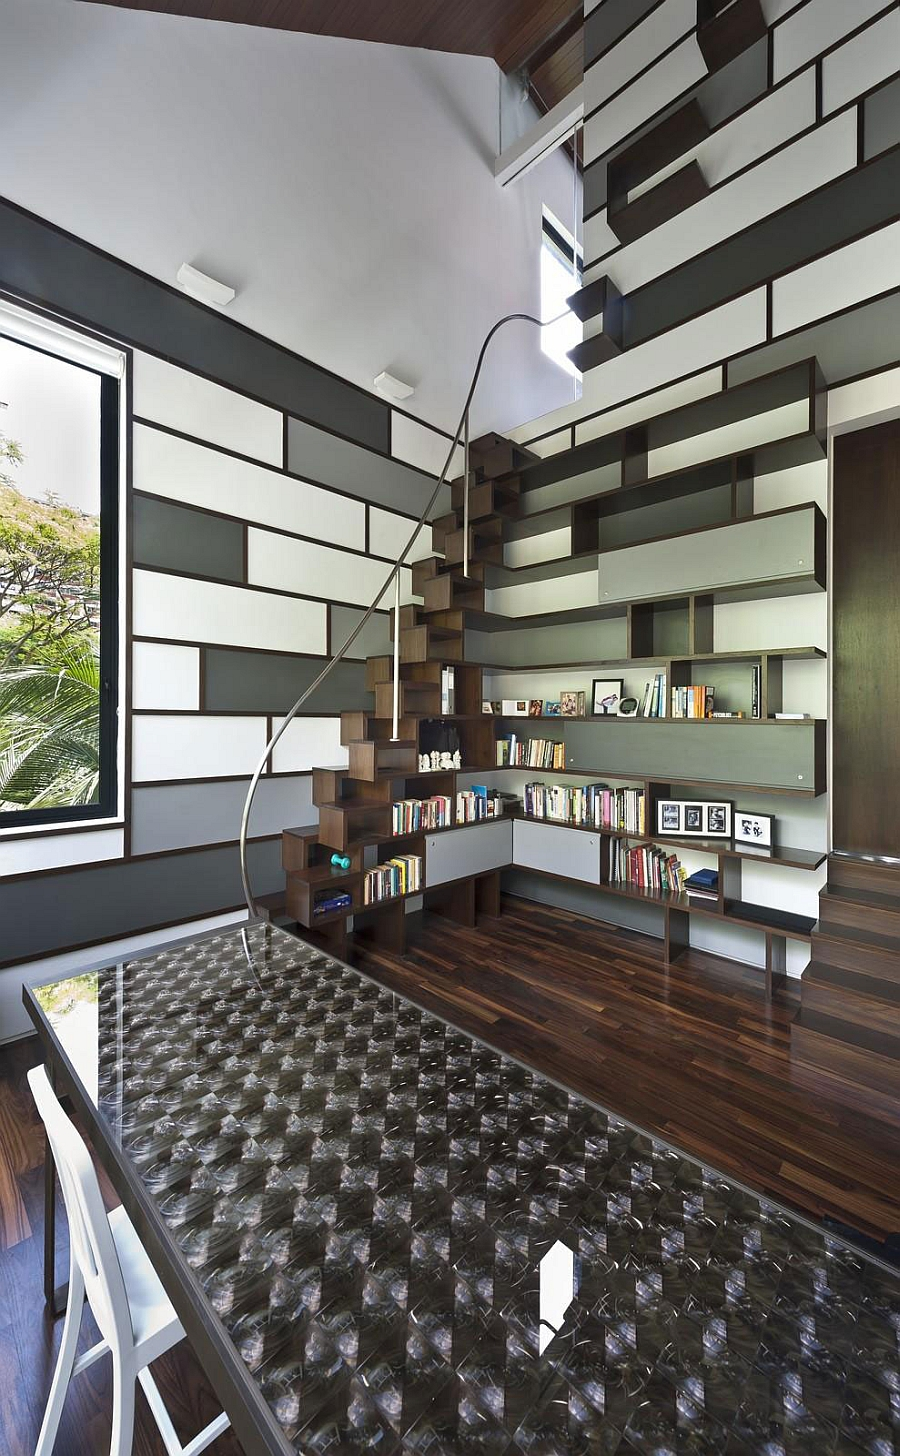 Brilliant scuptural bookshelf idea